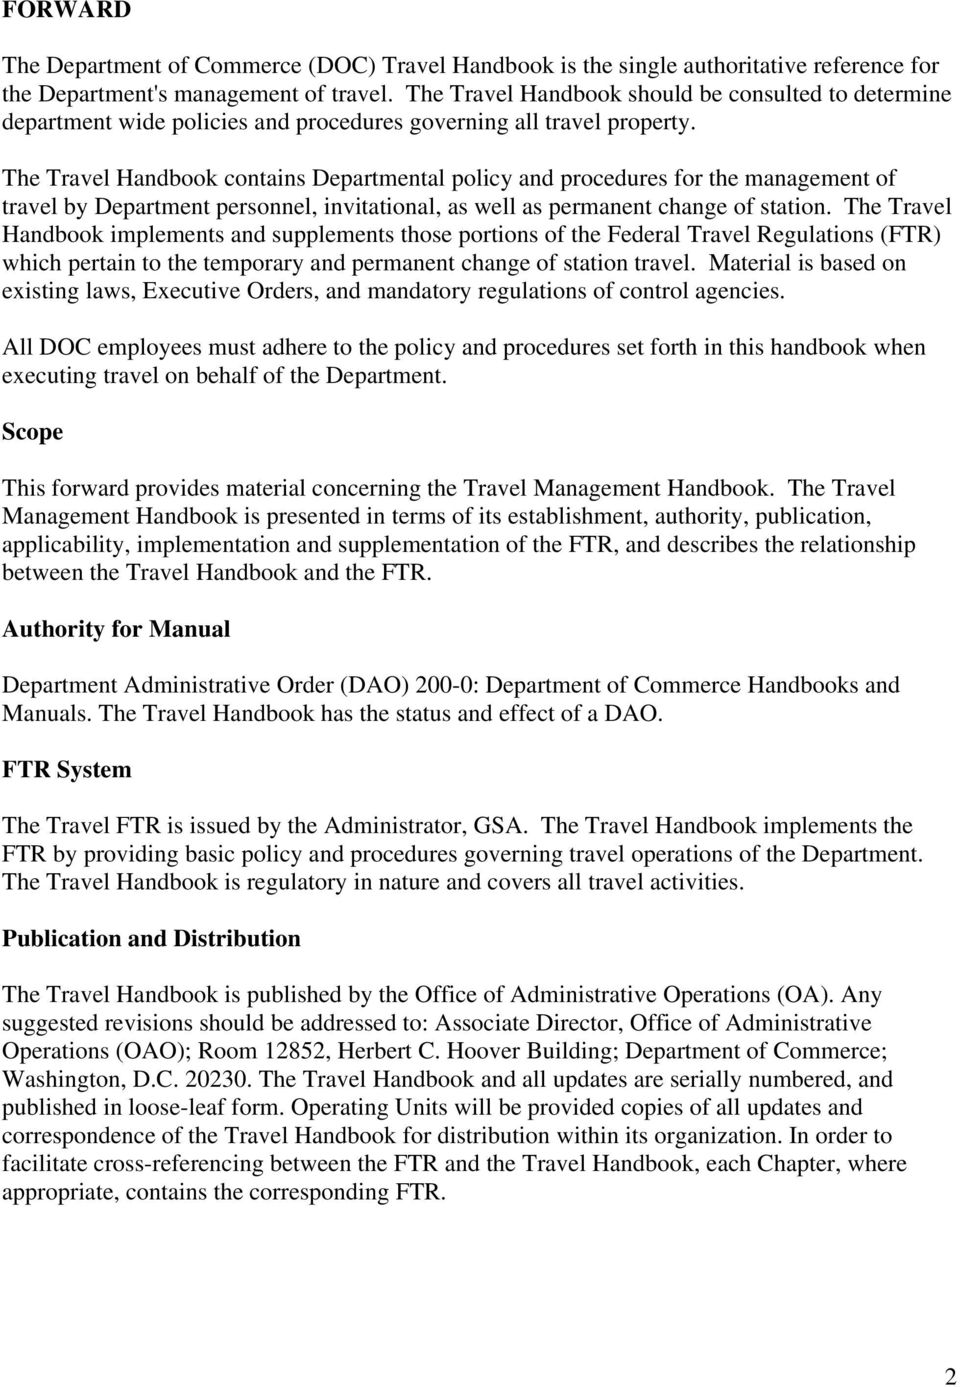 The Travel Handbook contains Departmental policy and procedures for the management of travel by Department personnel, invitational, as well as permanent change of station.